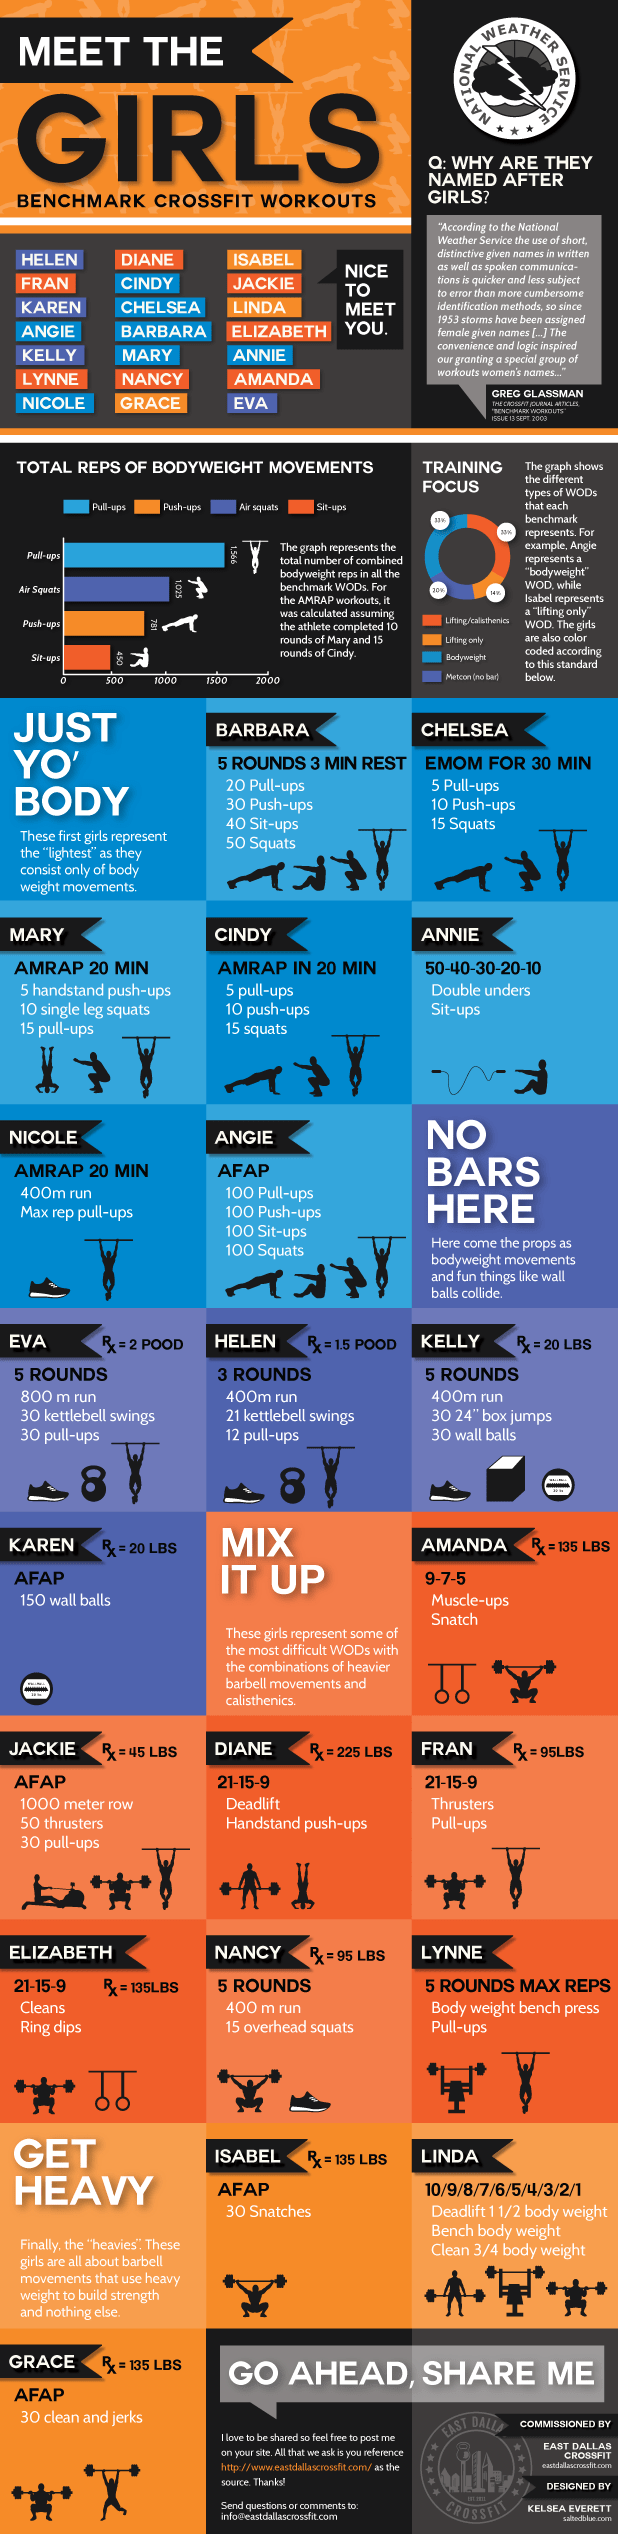 Meet The Girls CrossFit Benchmark Workouts Infographic